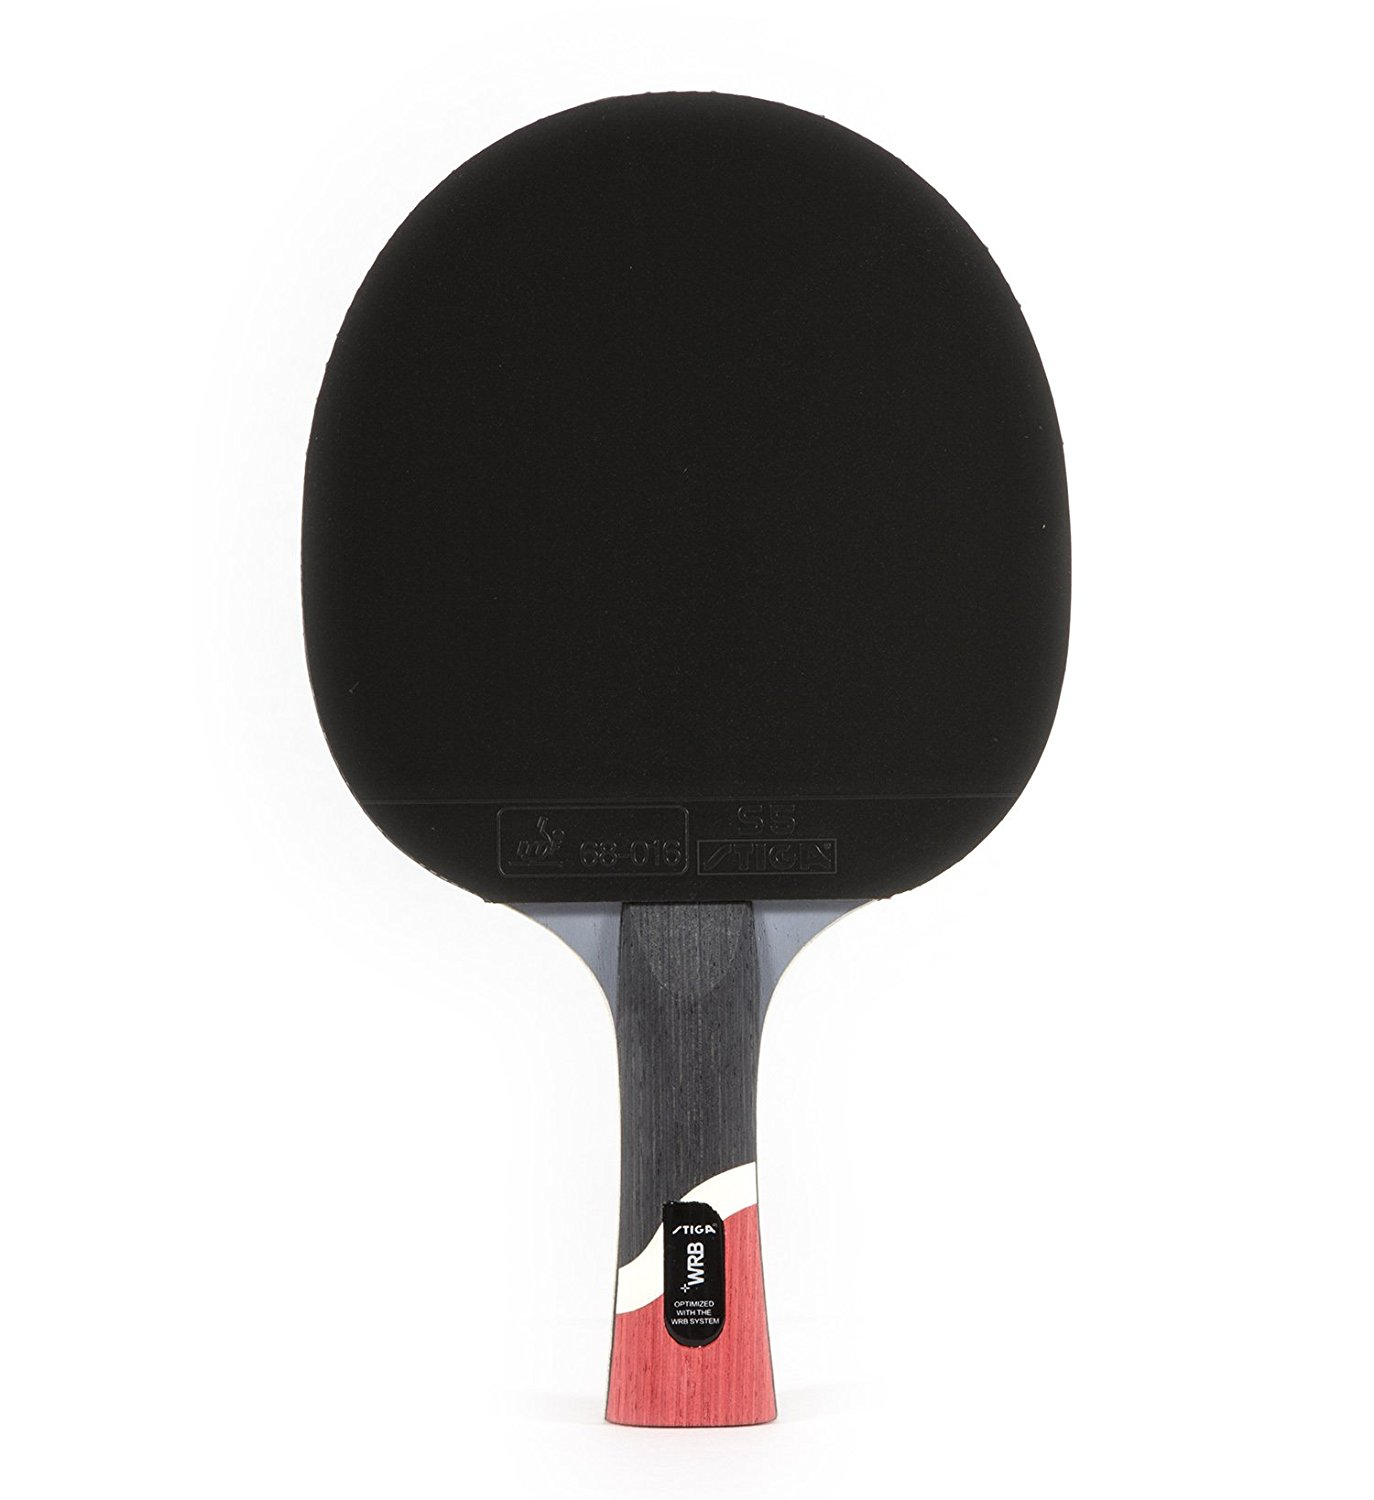 17 Best Ping Pong Paddles Reviews | Killerspin, Butterfly ...